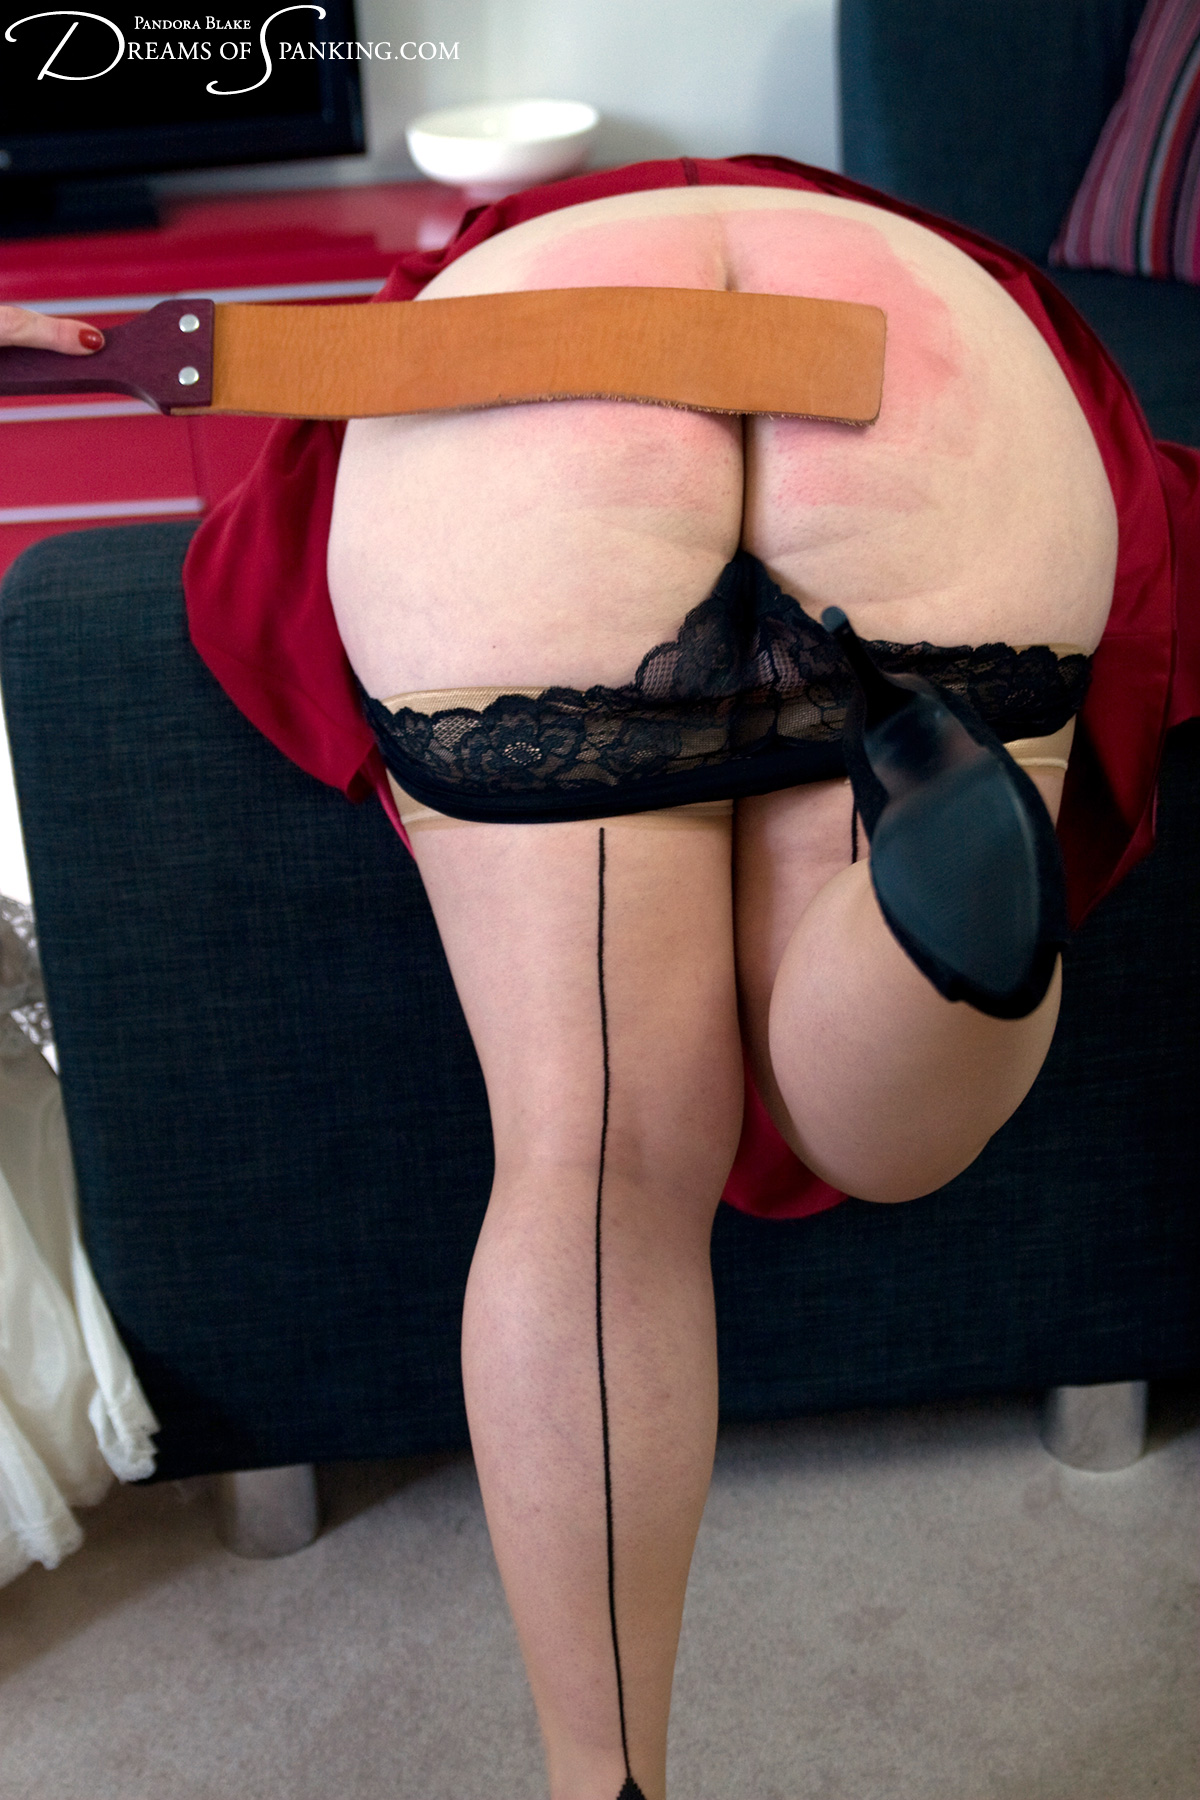 Bridal punishments at Dreams of Spanking